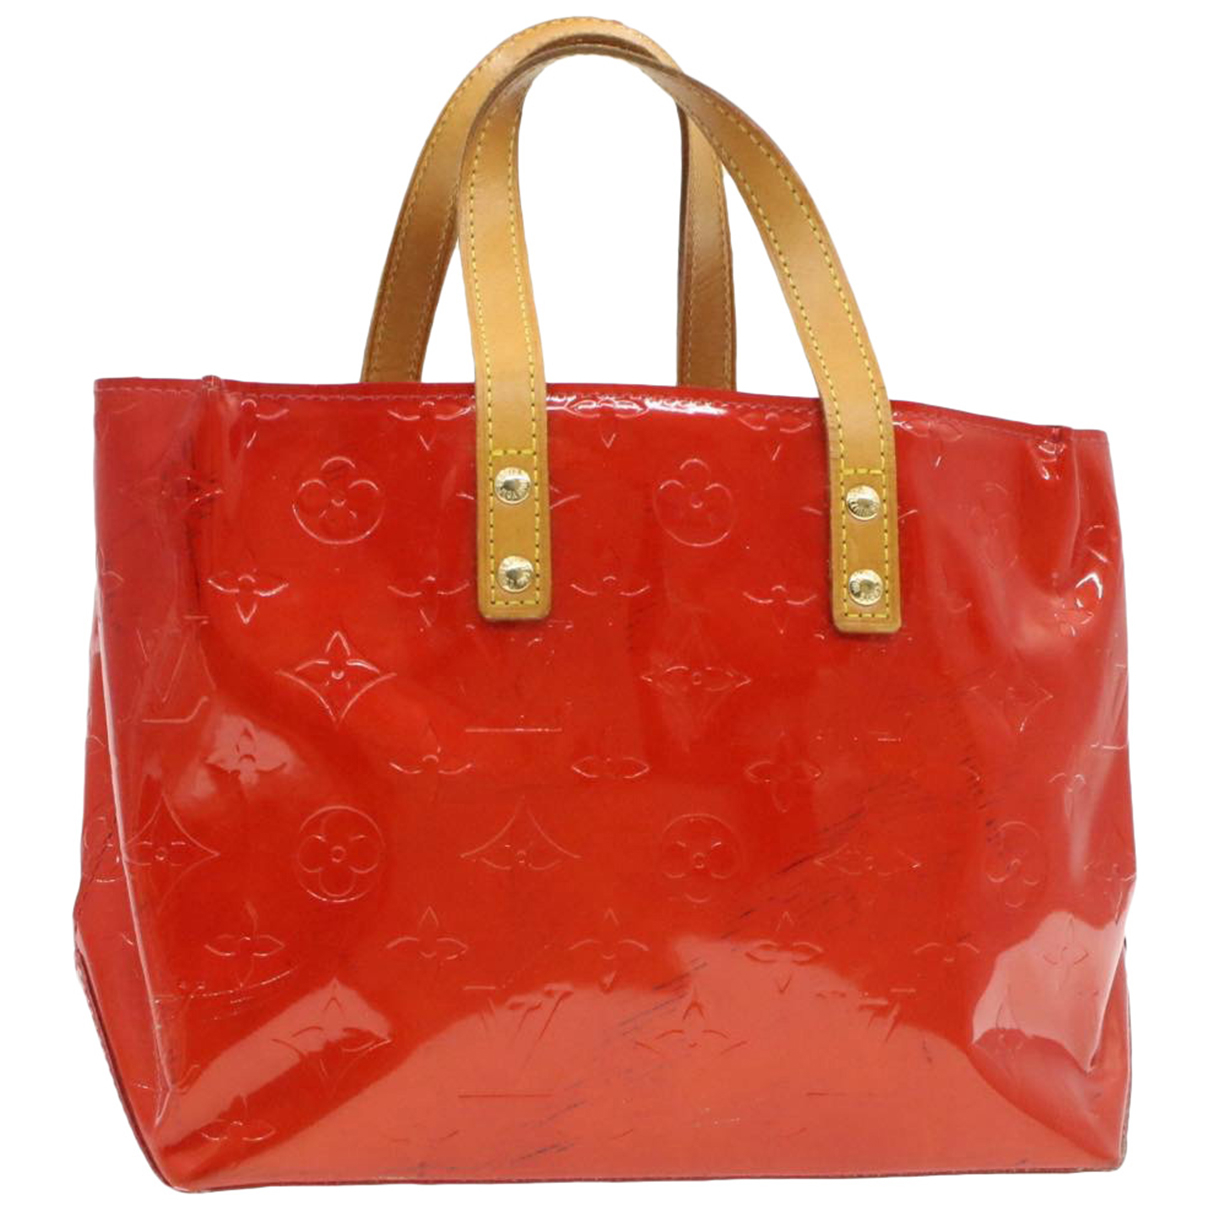 Louis Vuitton Reade Red Patent leather handbag for Women N